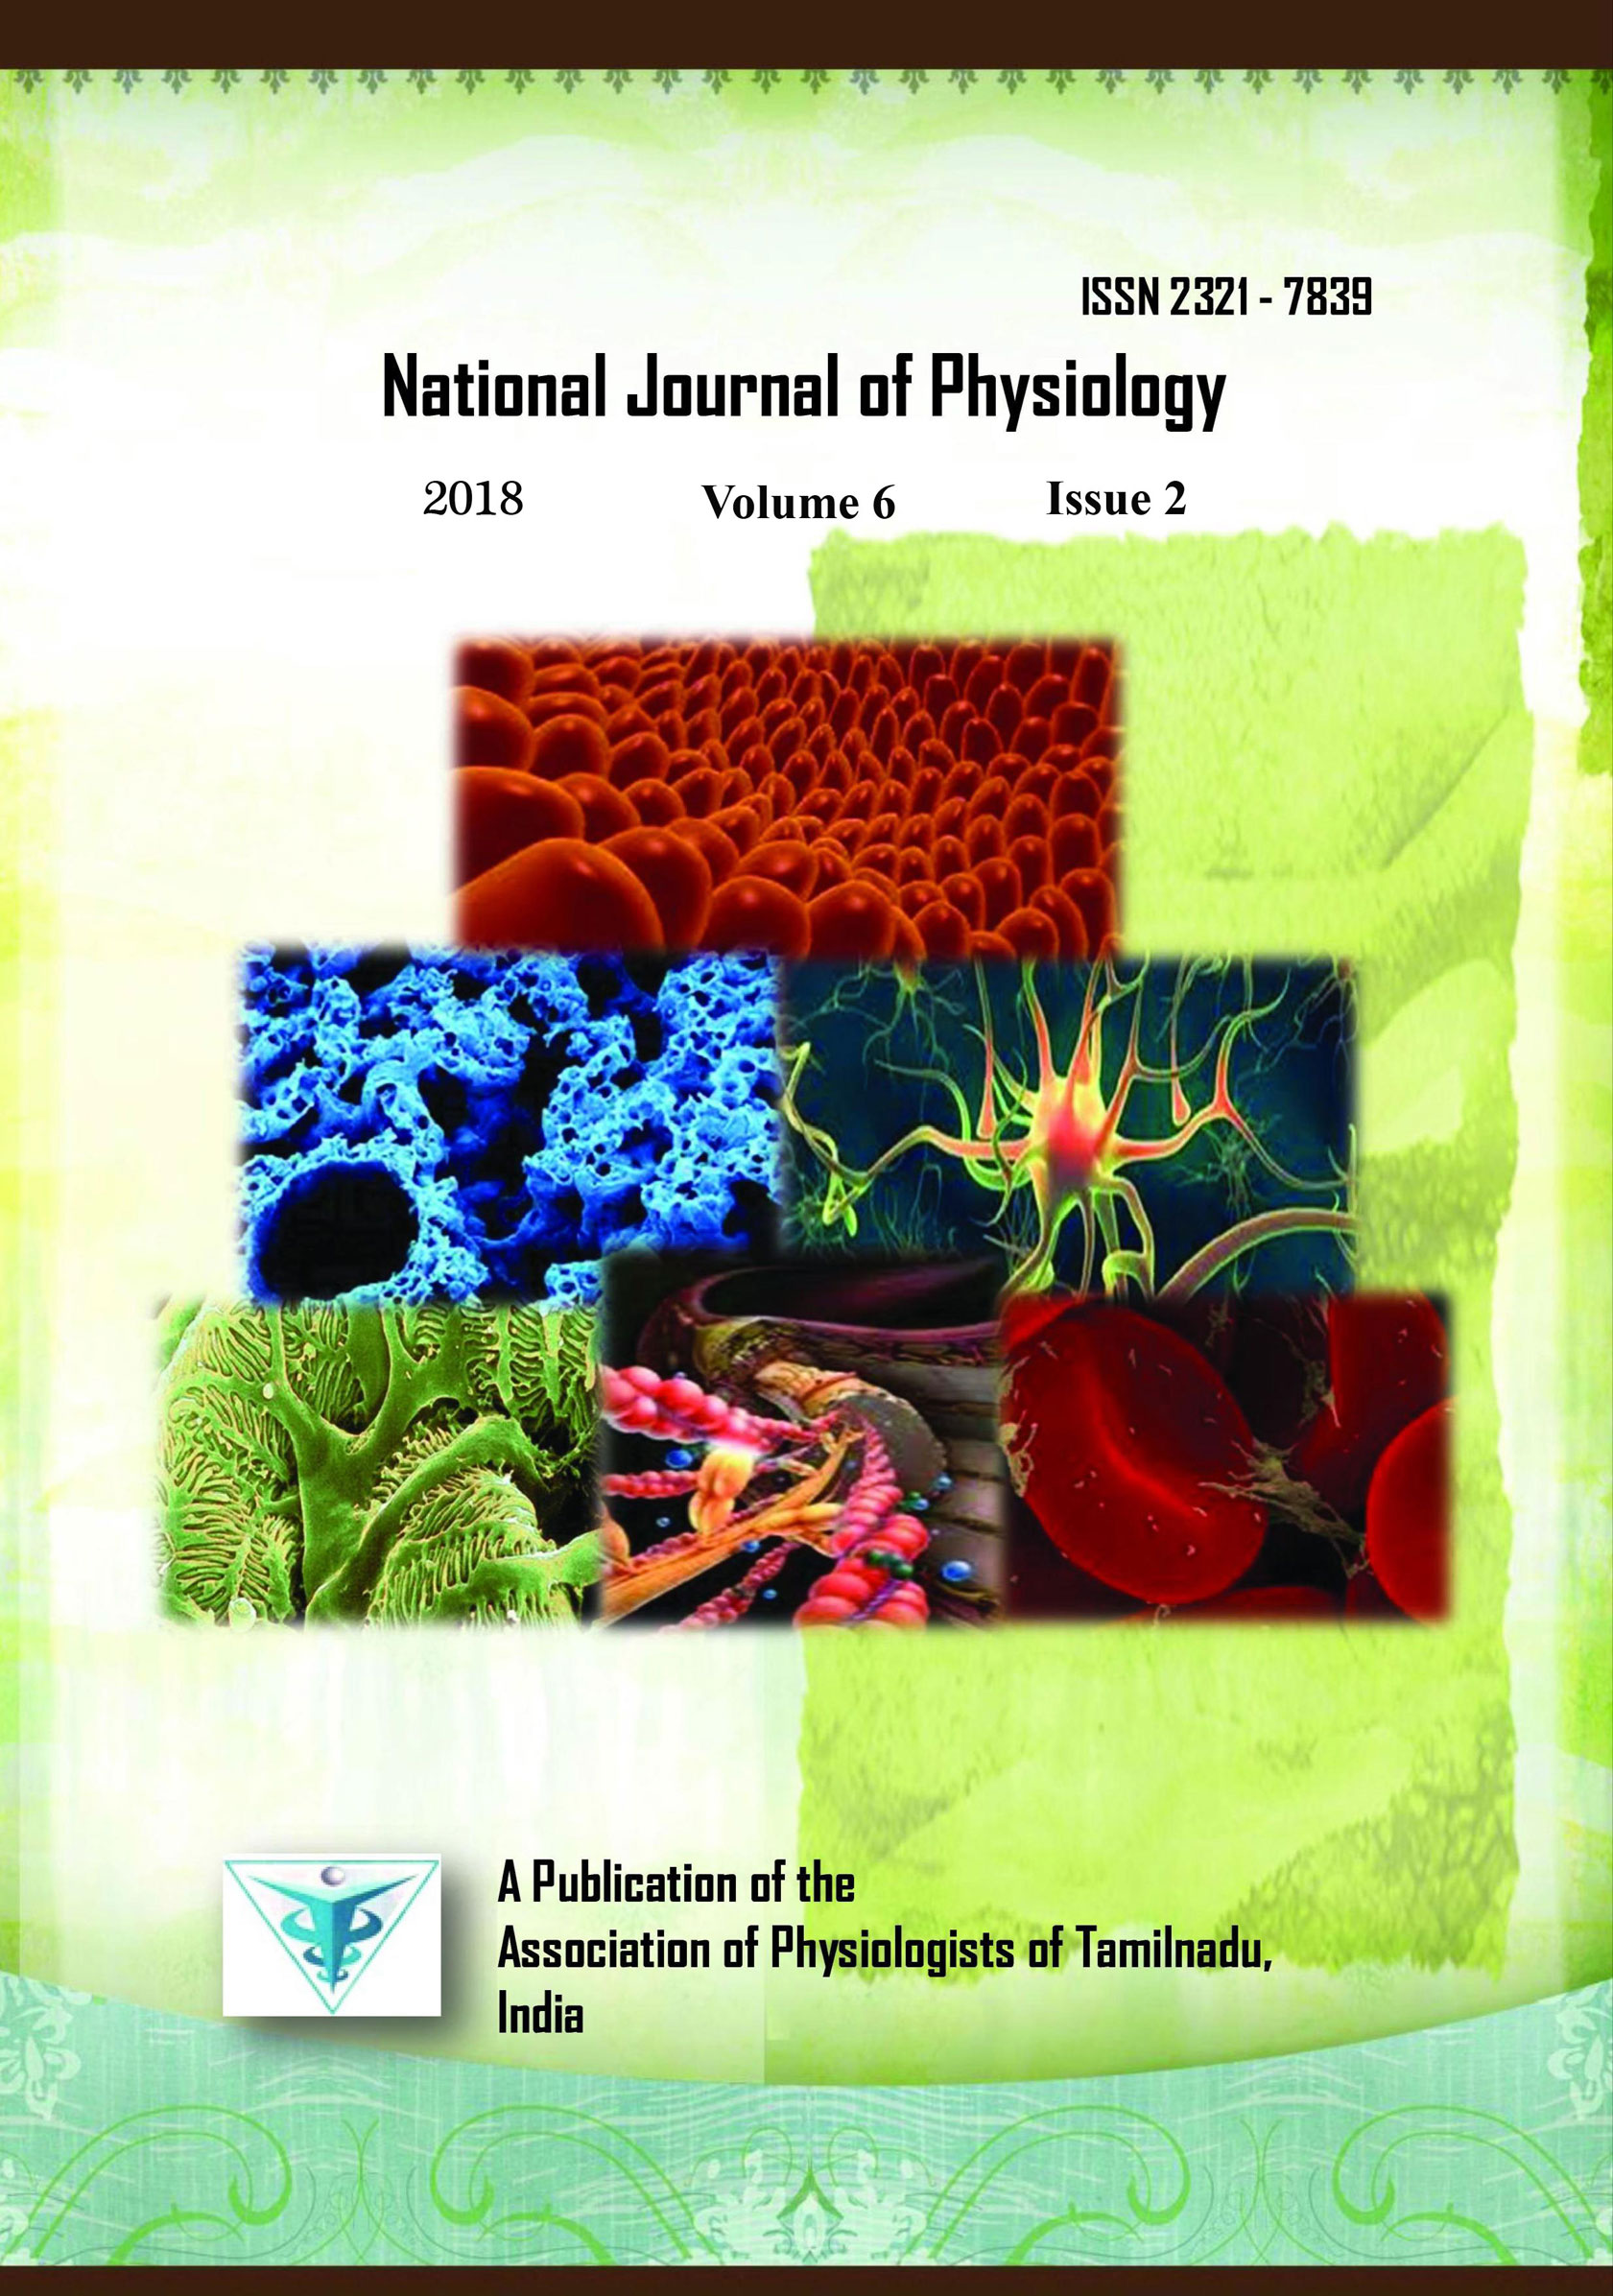 National Journal of Physiology